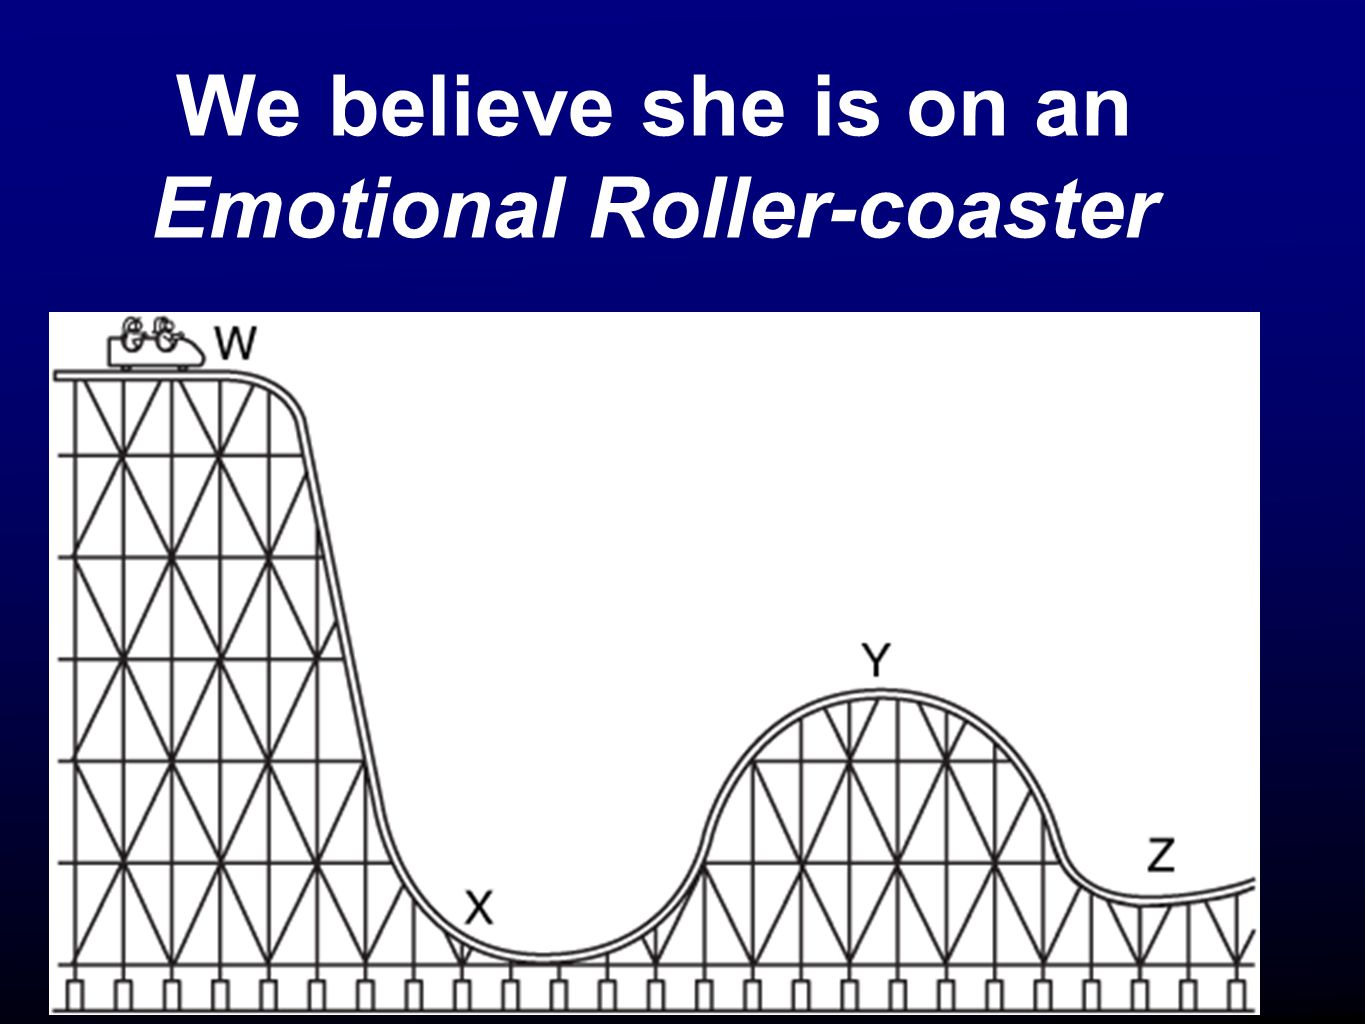 We believe she is on an Emotional Roller-coaster